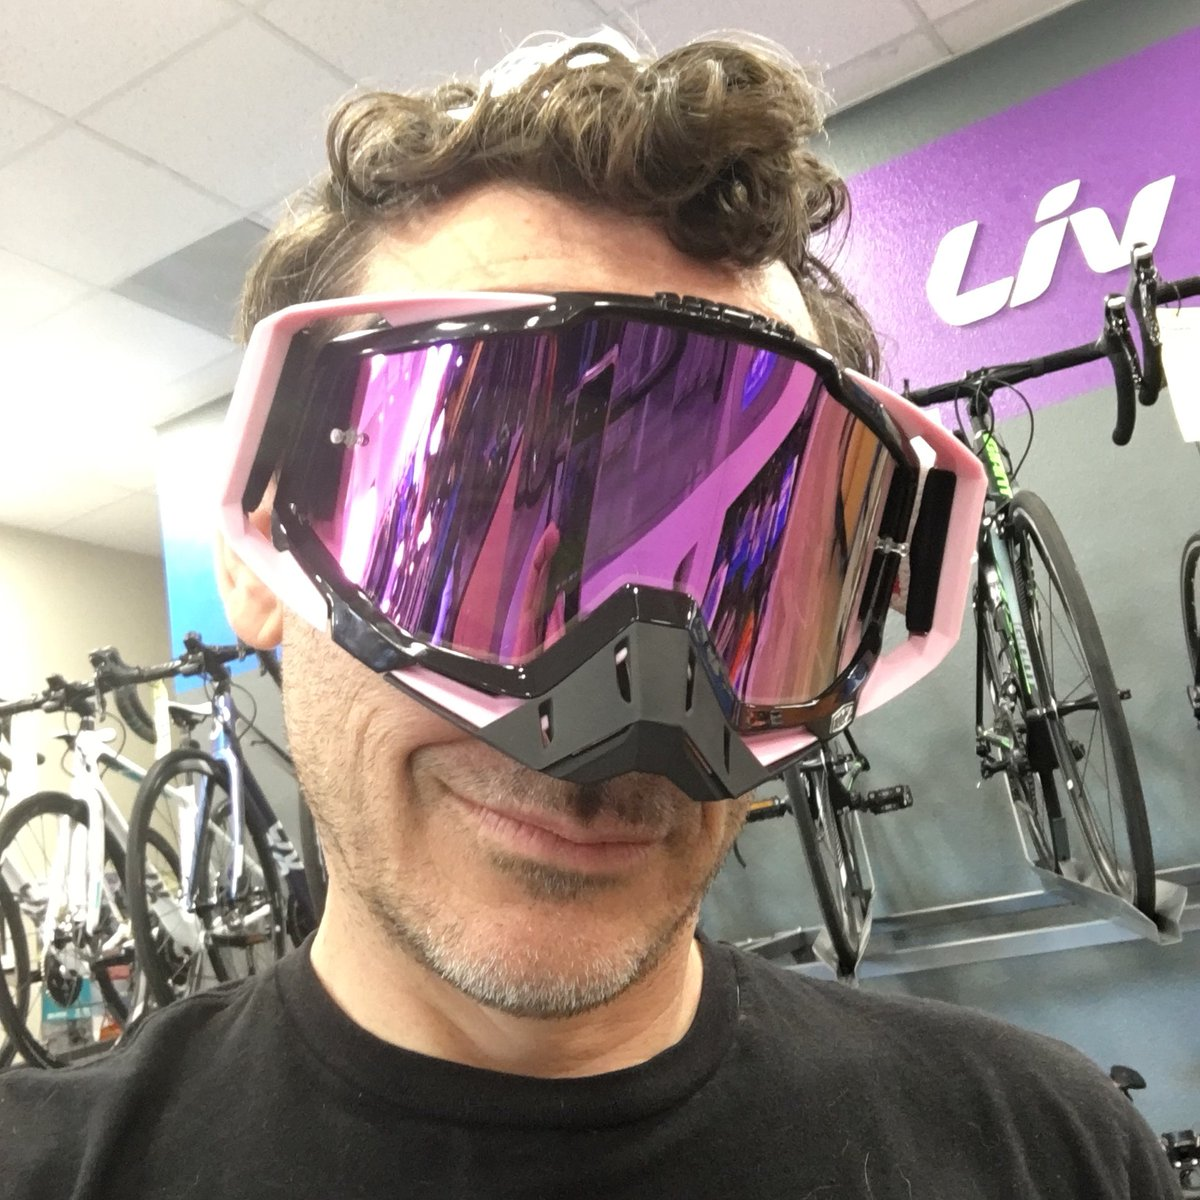 Trying out my new goggles from @ride100percent  are they awesome or what?  #bikevegas #mtbvegas #vegasmtb #giantlv #mtblove #SendIt #realmenwearpinkpic.twitter.com/GZr8bAU6mK – at Giant Las Vegas